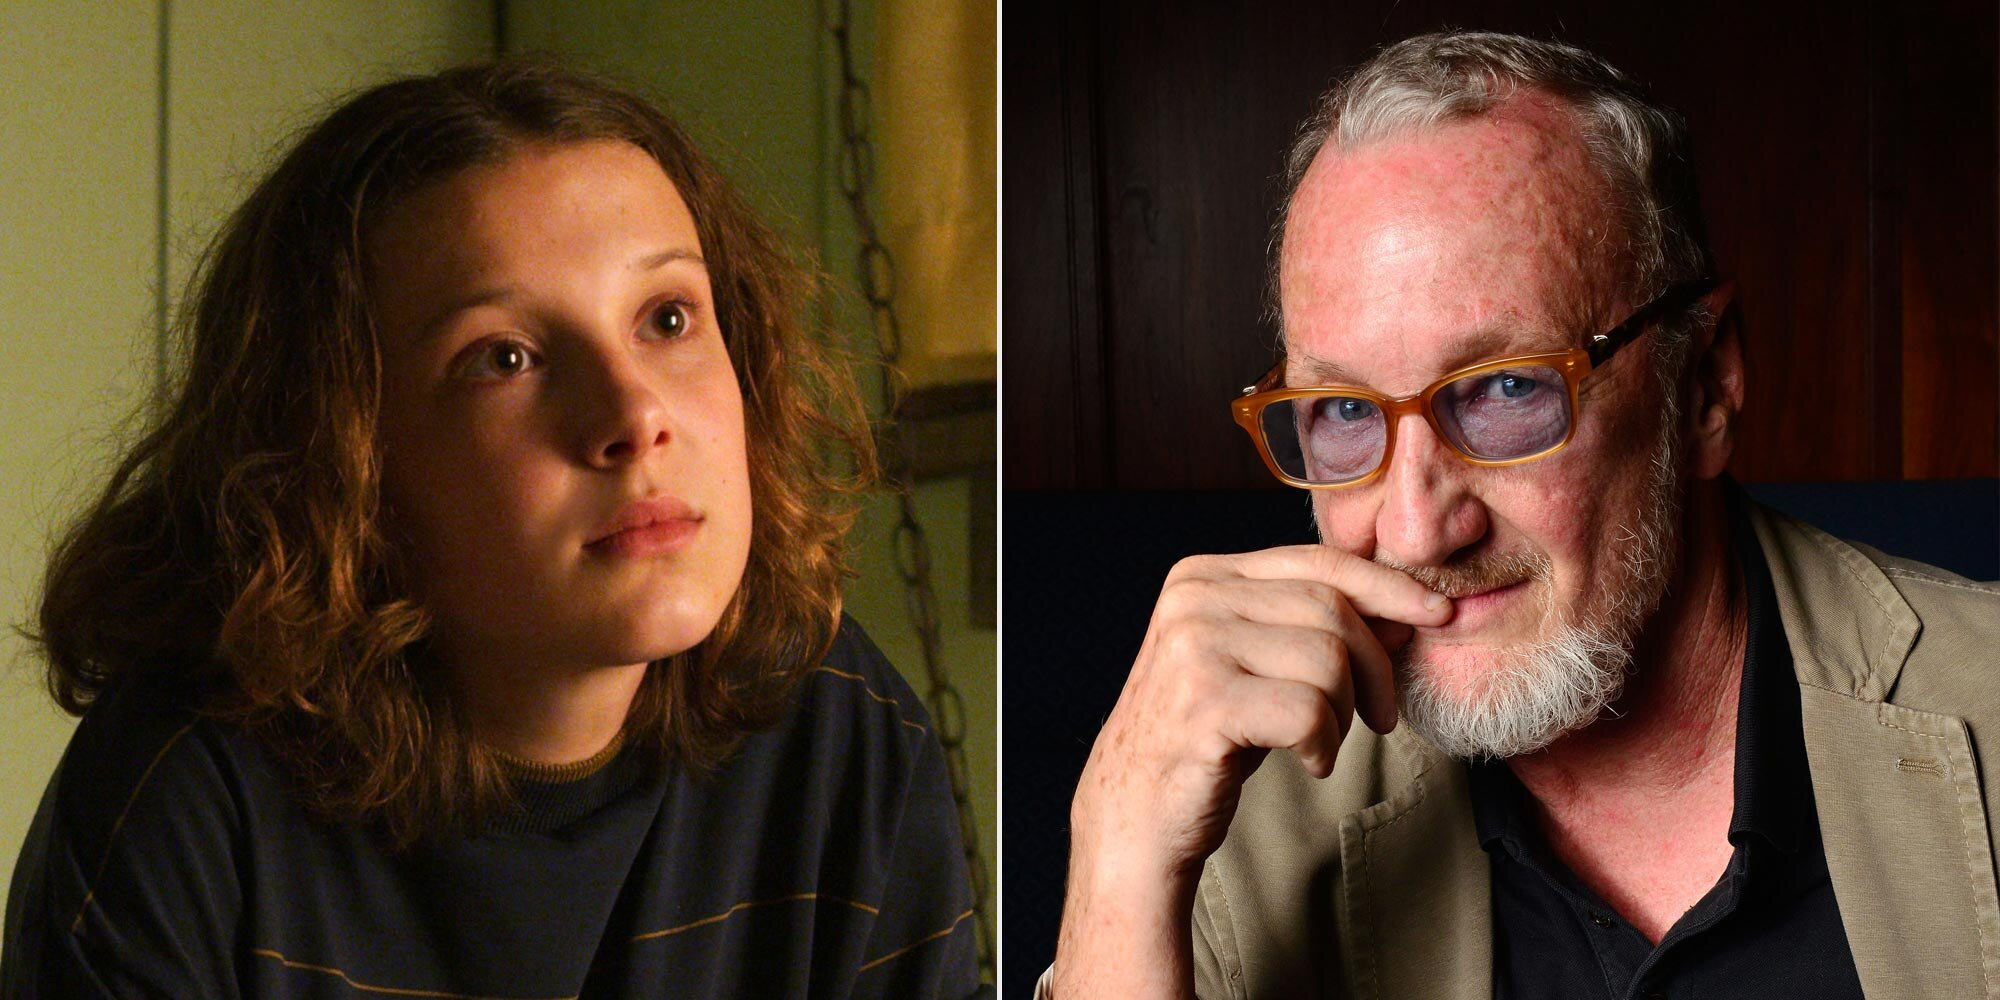 'Stranger Things 4' goes inside haunted house with ties to Robert Englund's character